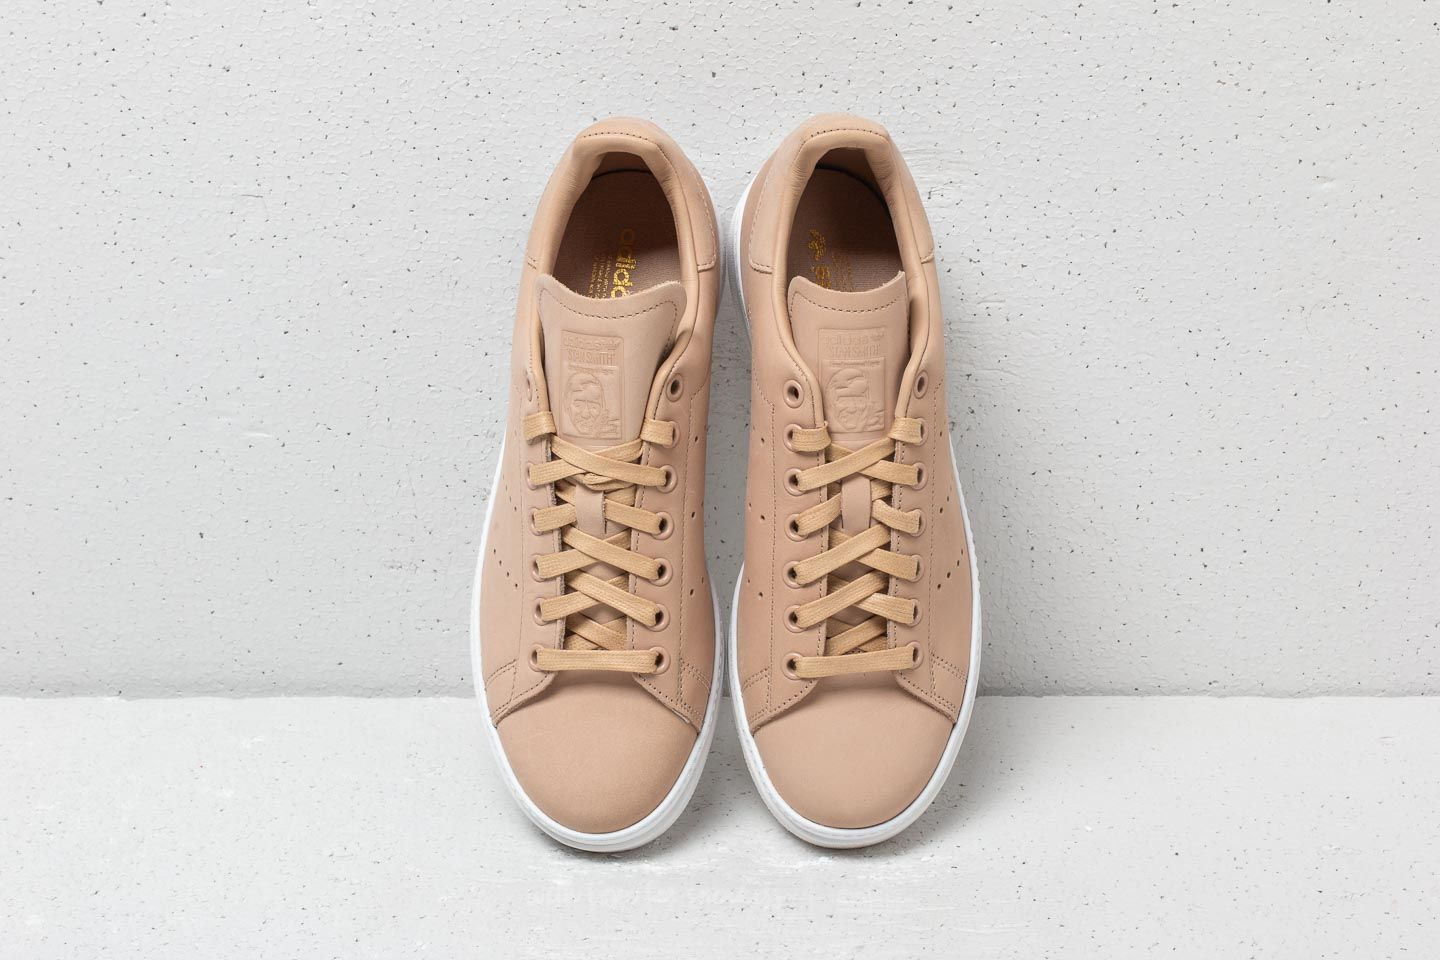 adidas Stan Smith New Bold W St Pale Nude St Pale Nude Ftw